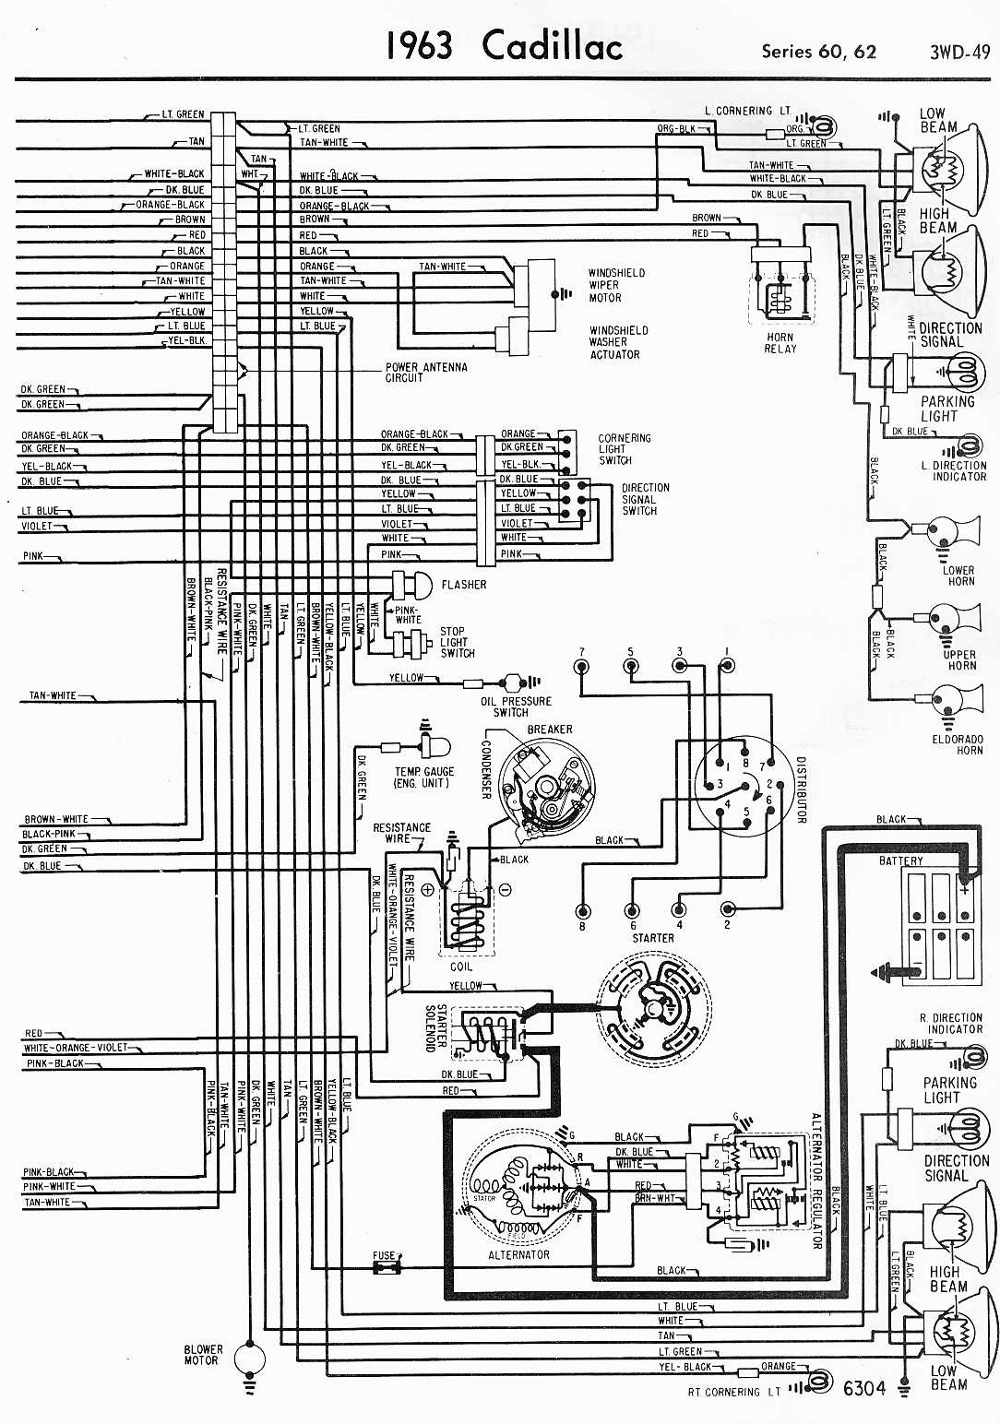 Wiring Diagram Program | Wiring Liry on